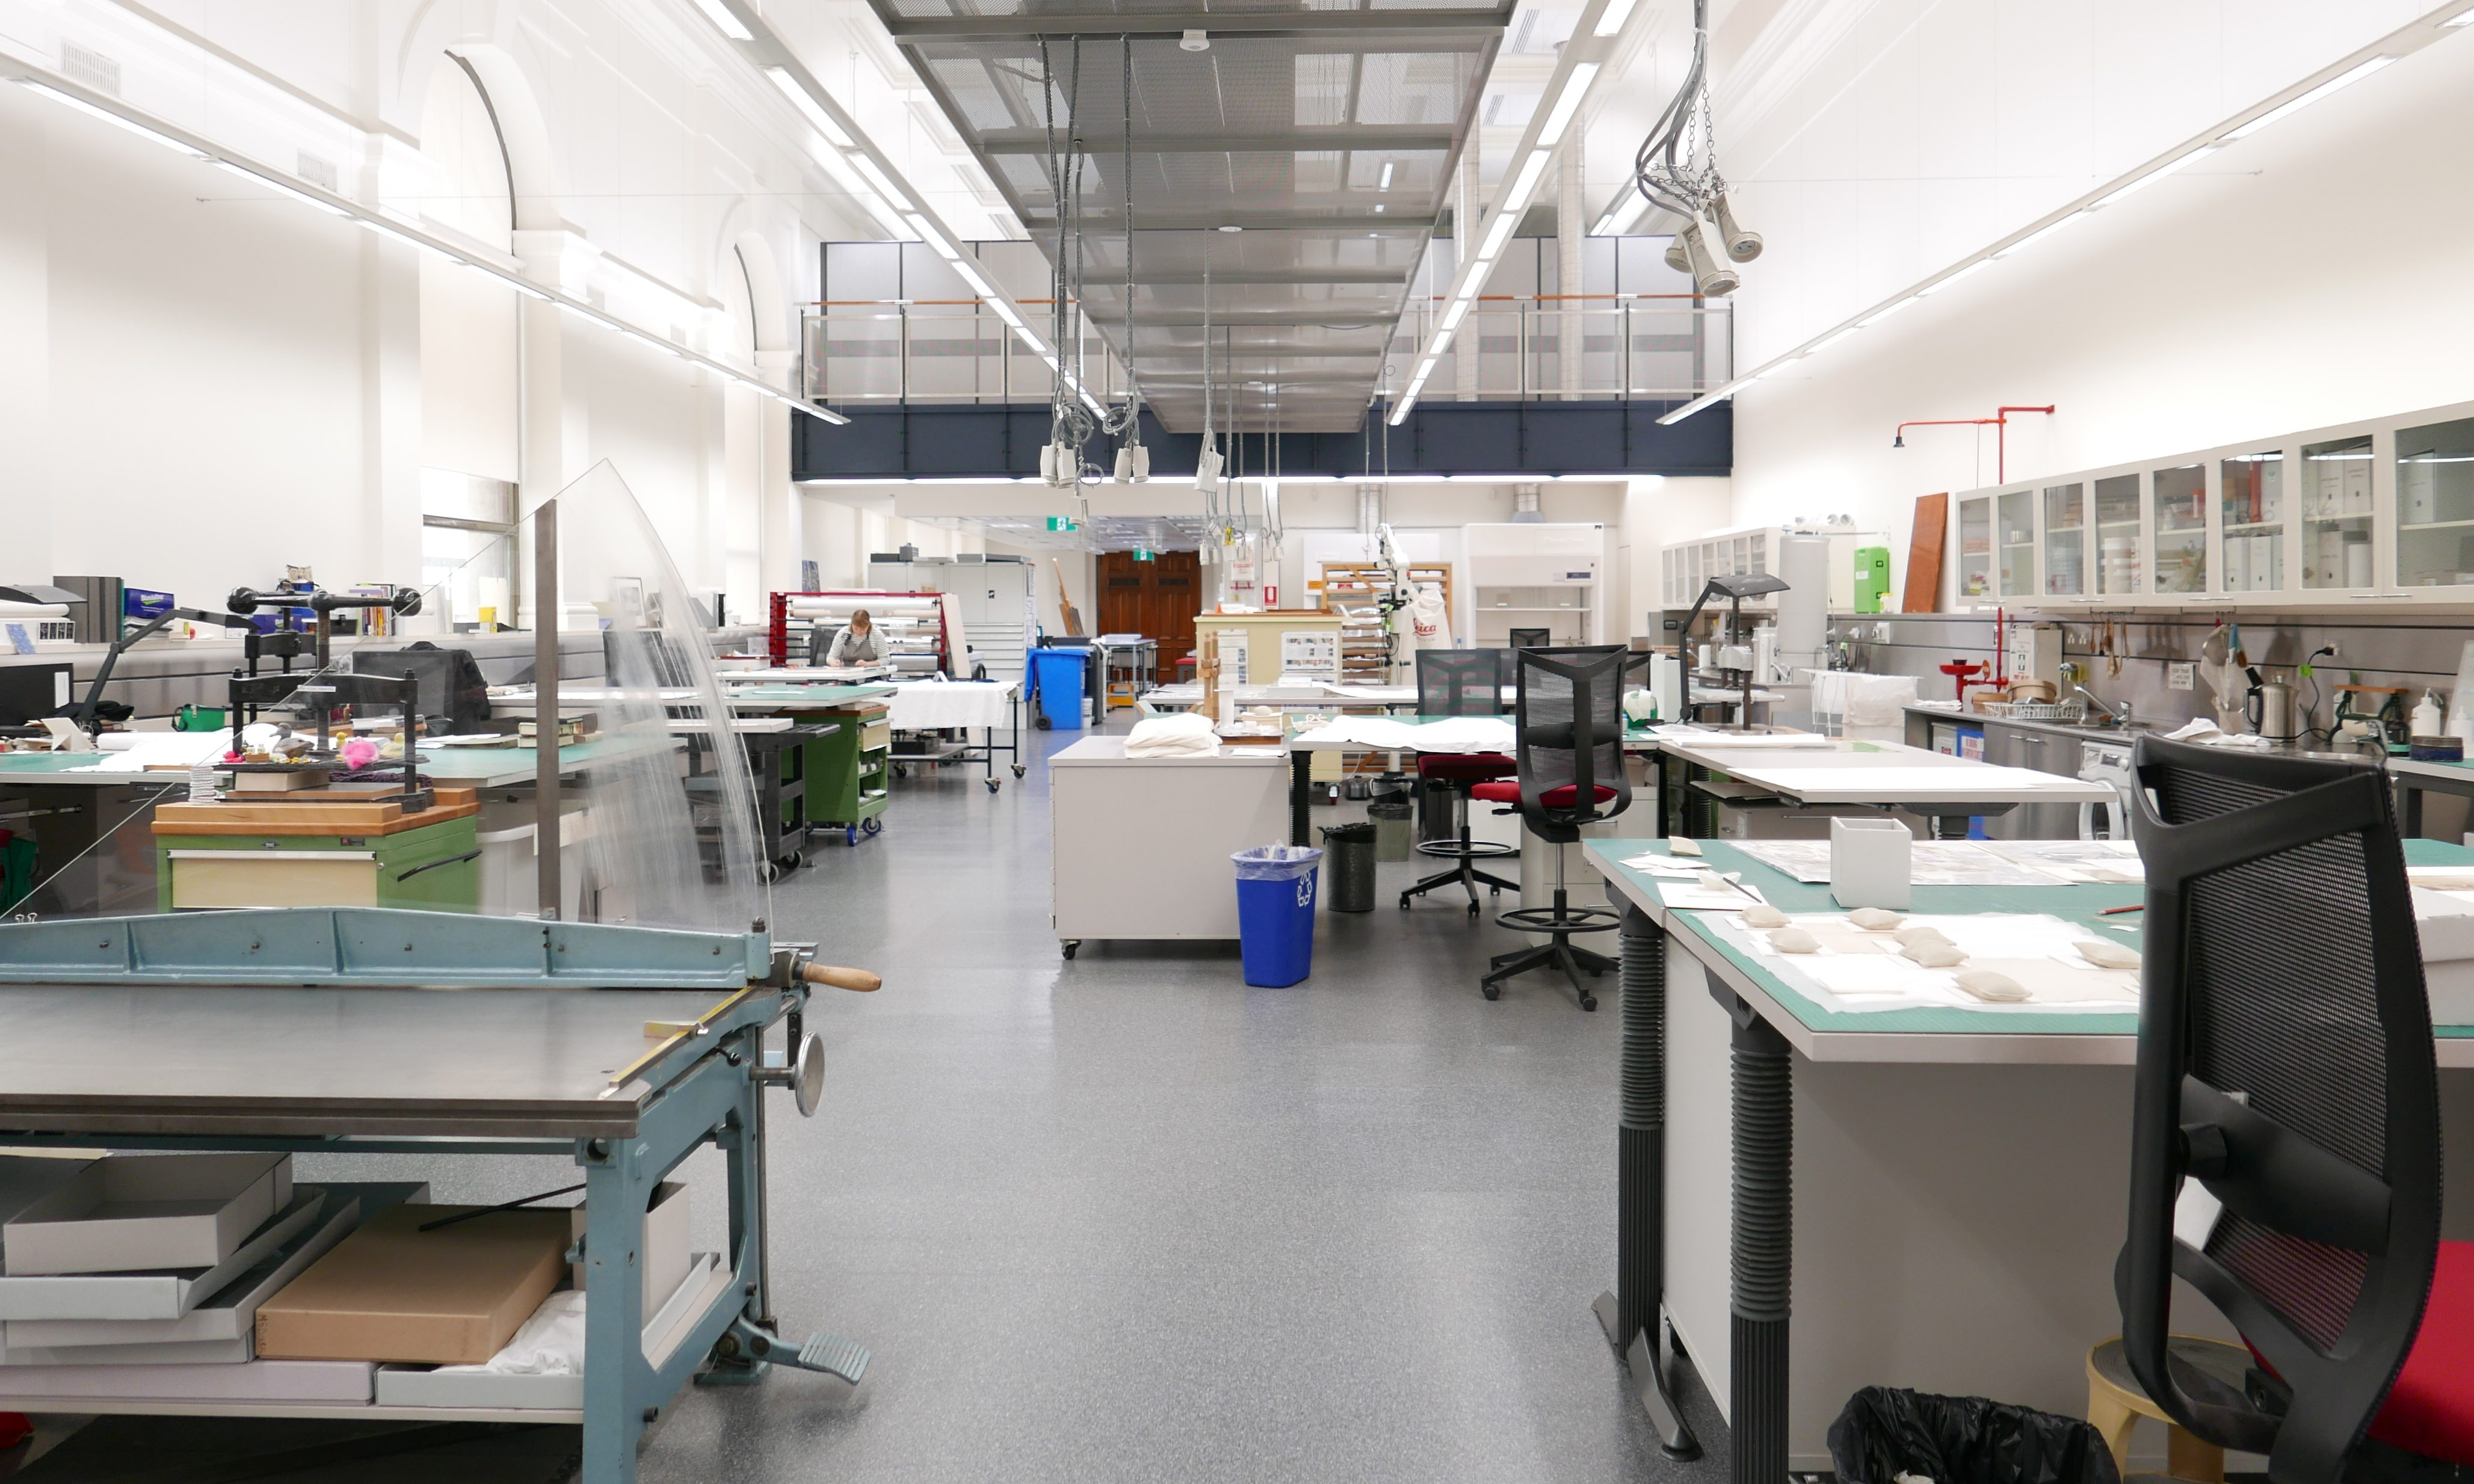 laboratory with desks and conservation equipment